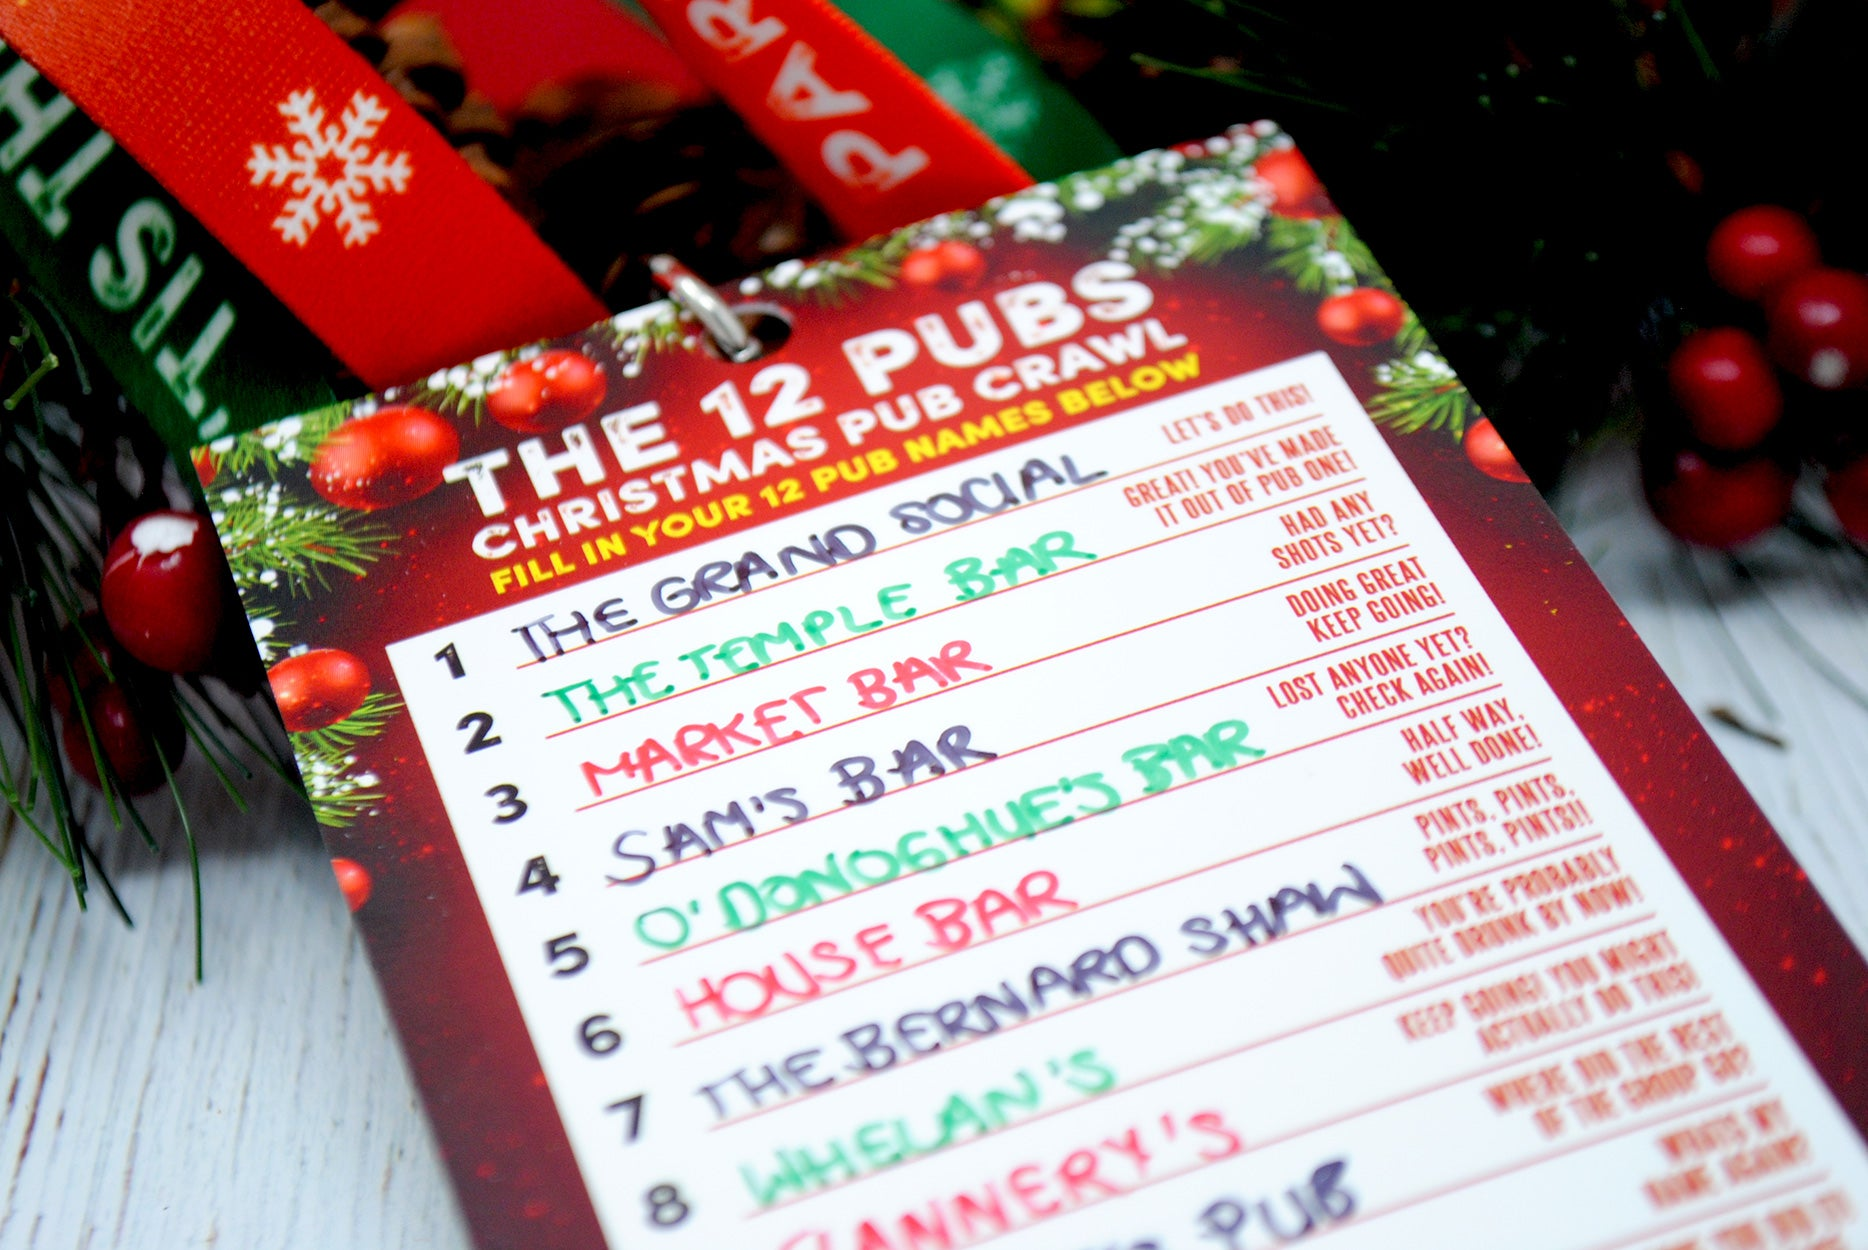 the 12 pubs of christmas dublin pub crawl route